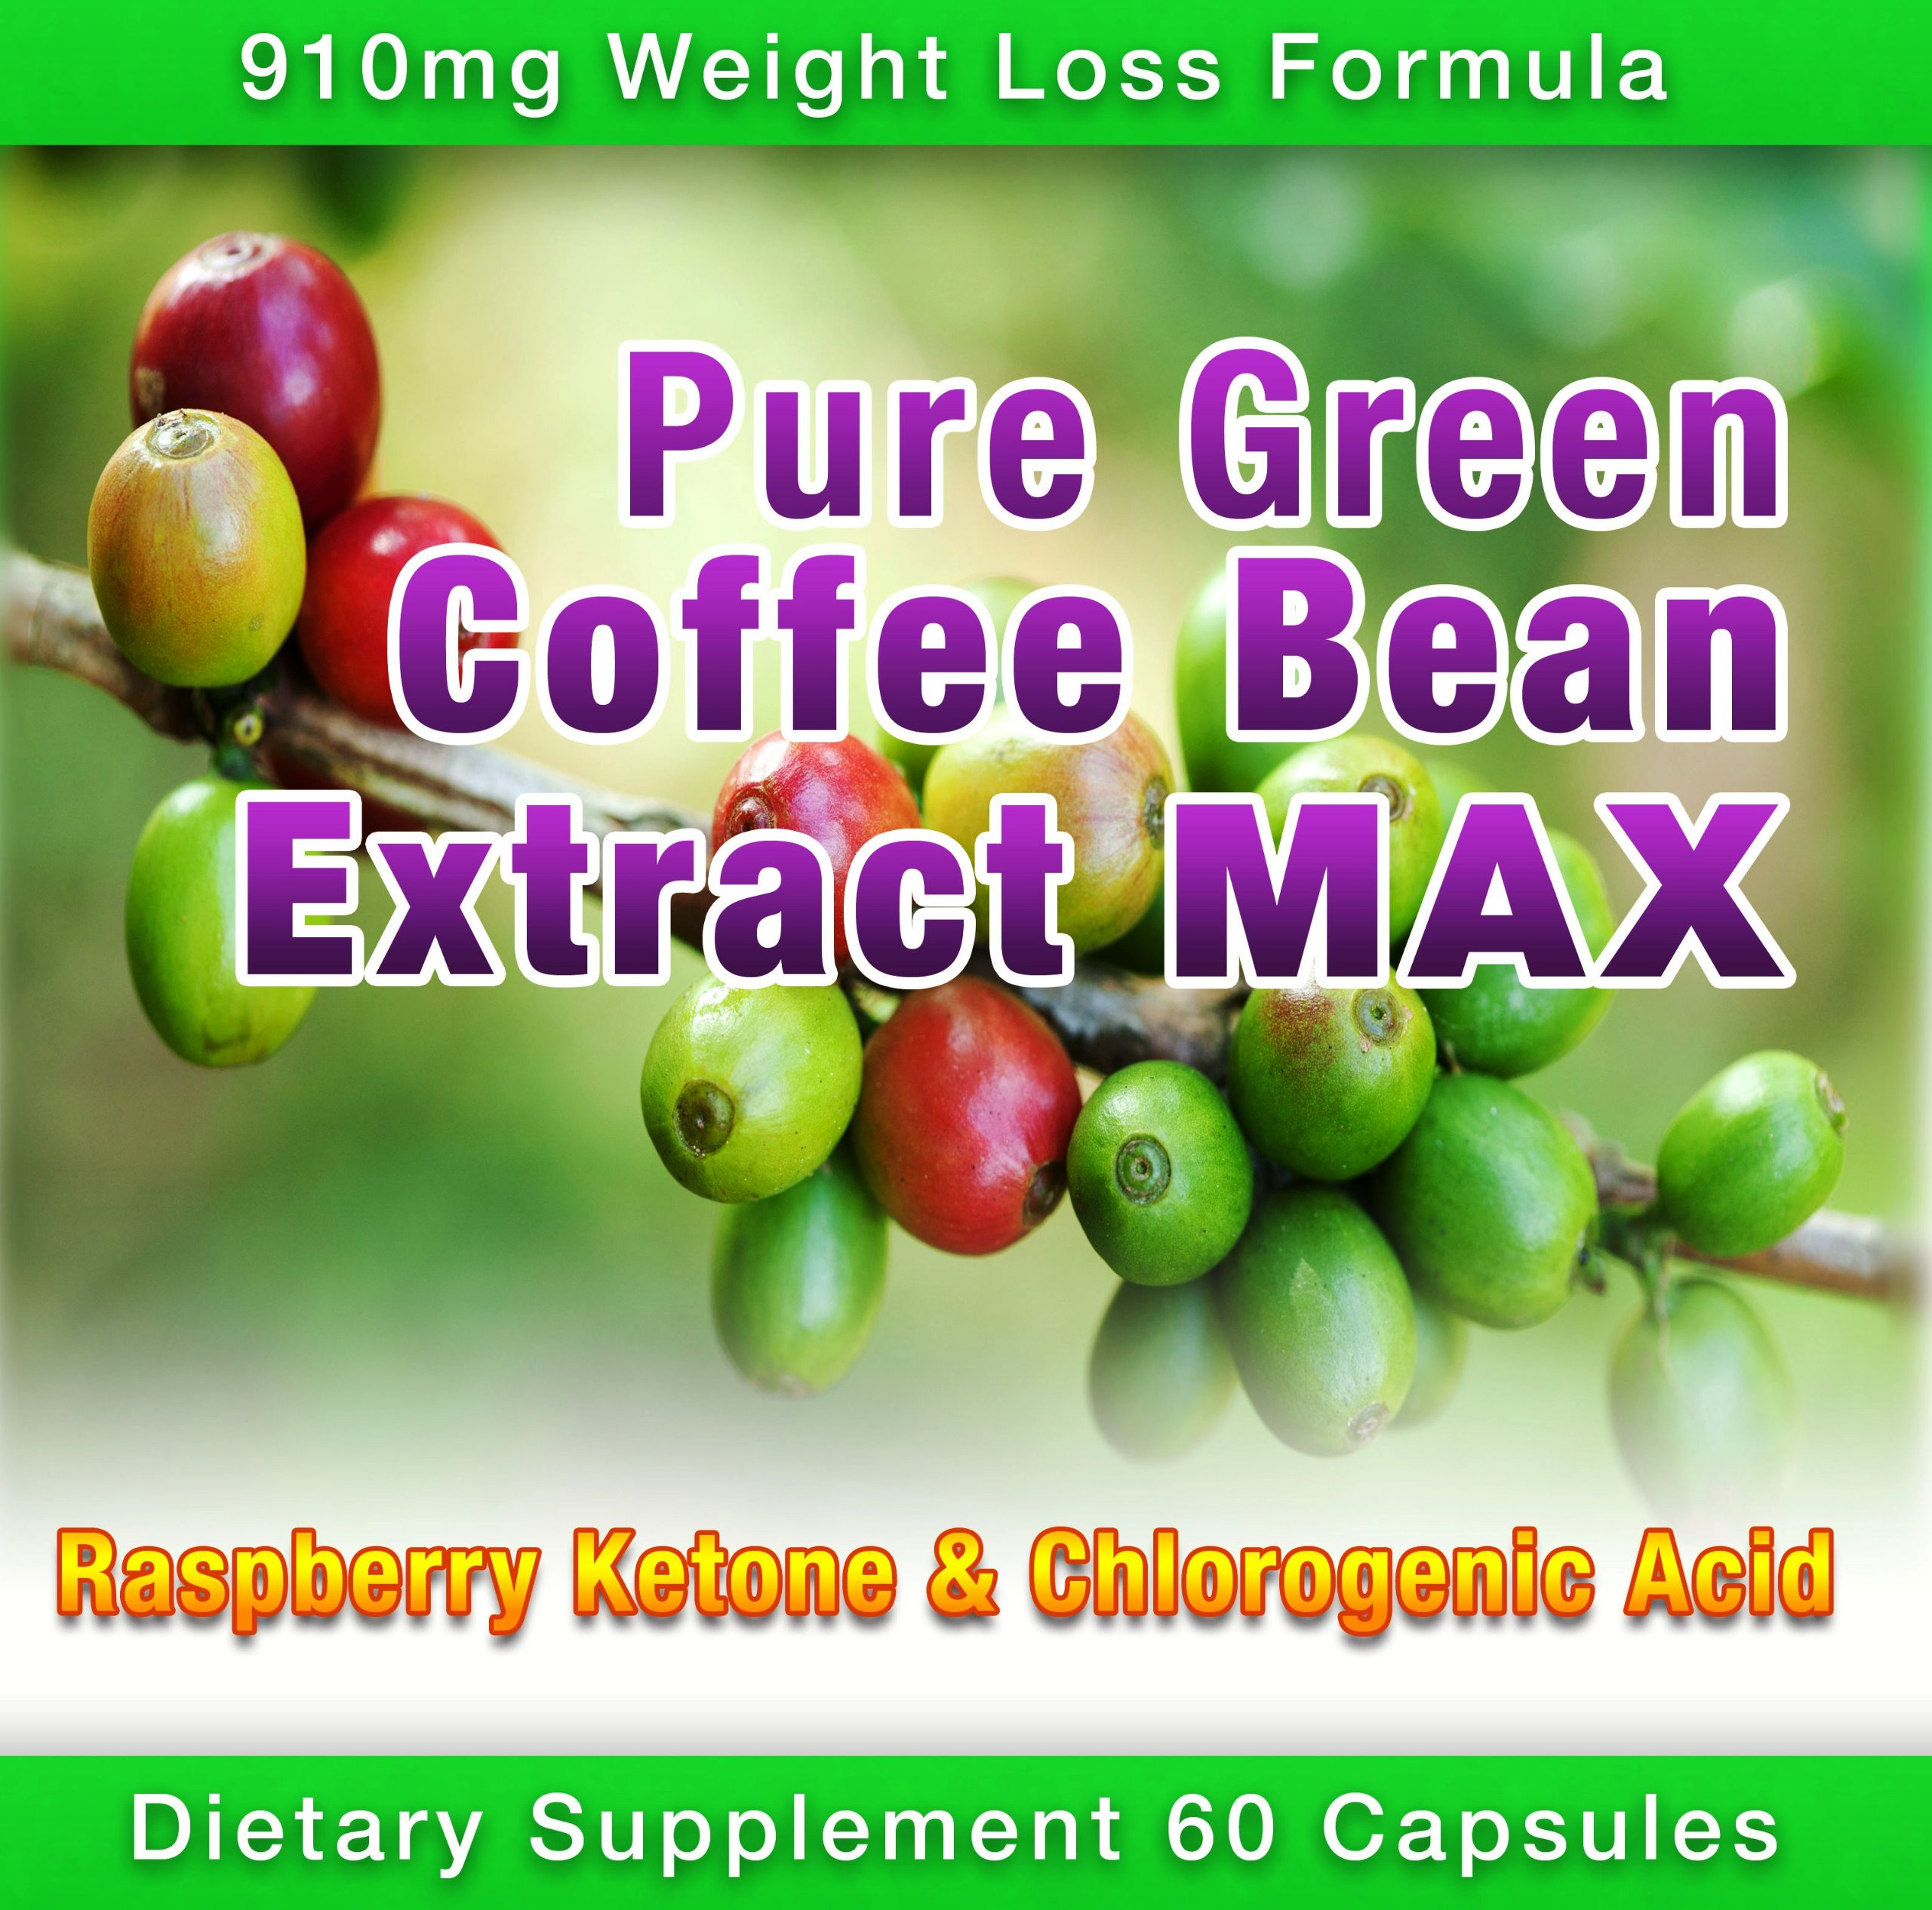 Pure Green Coffee Bean Extract Max ~ Strongest Diet Pill ~ 910mg Weight Loss Formula ~ Green Coffee Bean Extract 800mg ~ 100mg Raspberry Ketones ~ Downloadable FOOD JOURNAL Included ~ Contains up to 45% to 50% Chlorogenic Acid ~ 3 Month Supply by Diet Health Solutions (Image #2)